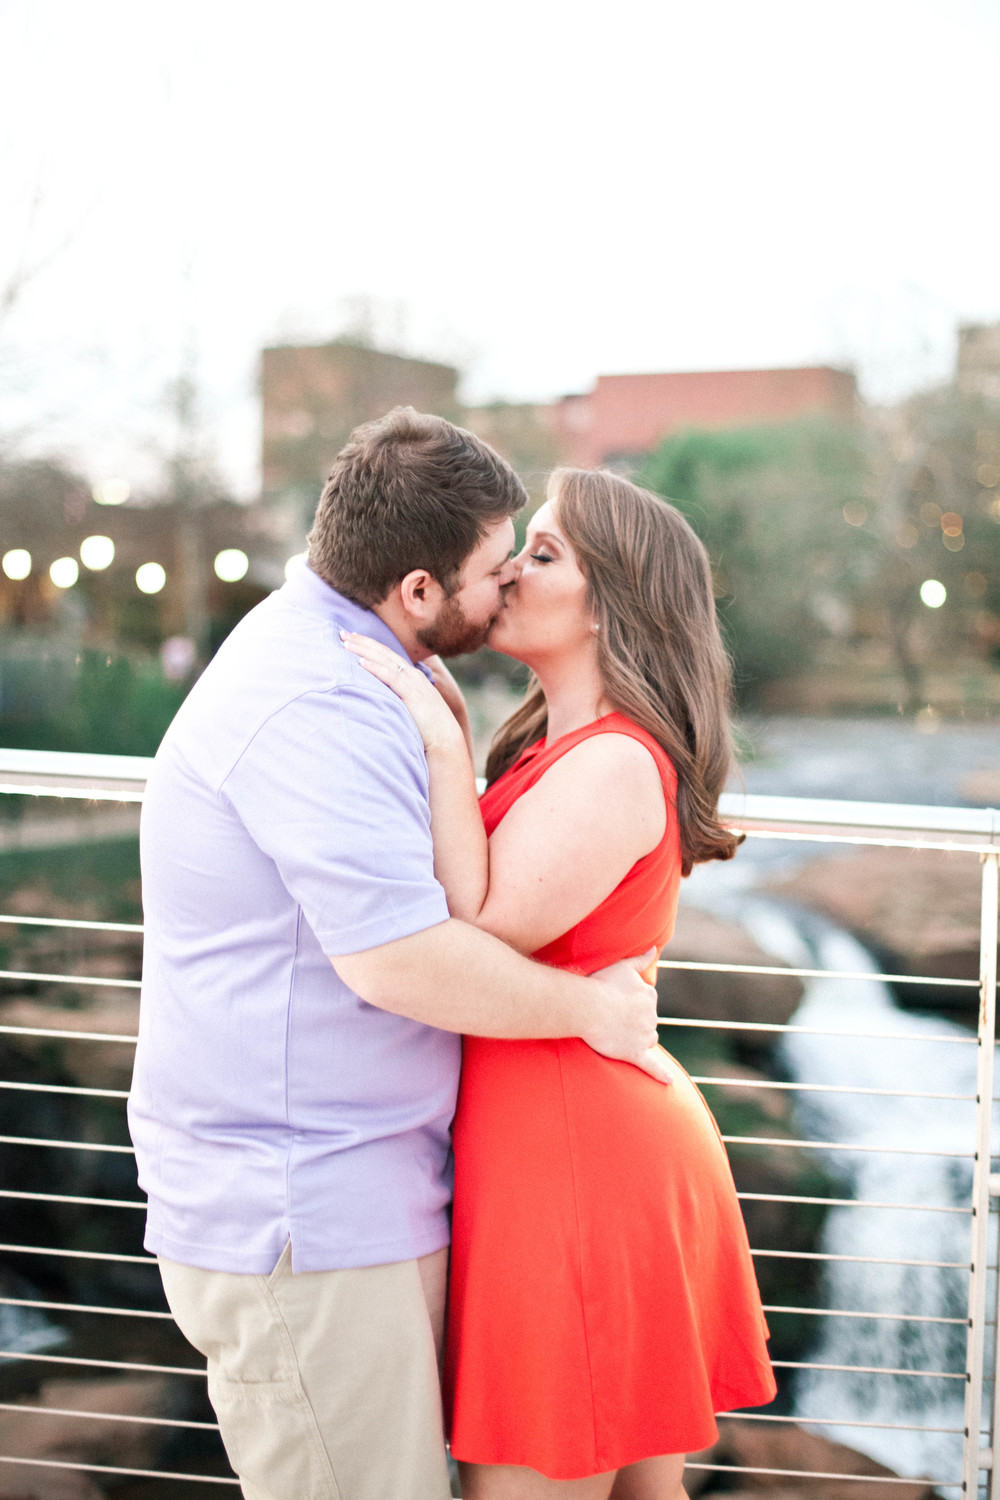 zach_gabbie_engagement_poured_out_photography-72.jpg